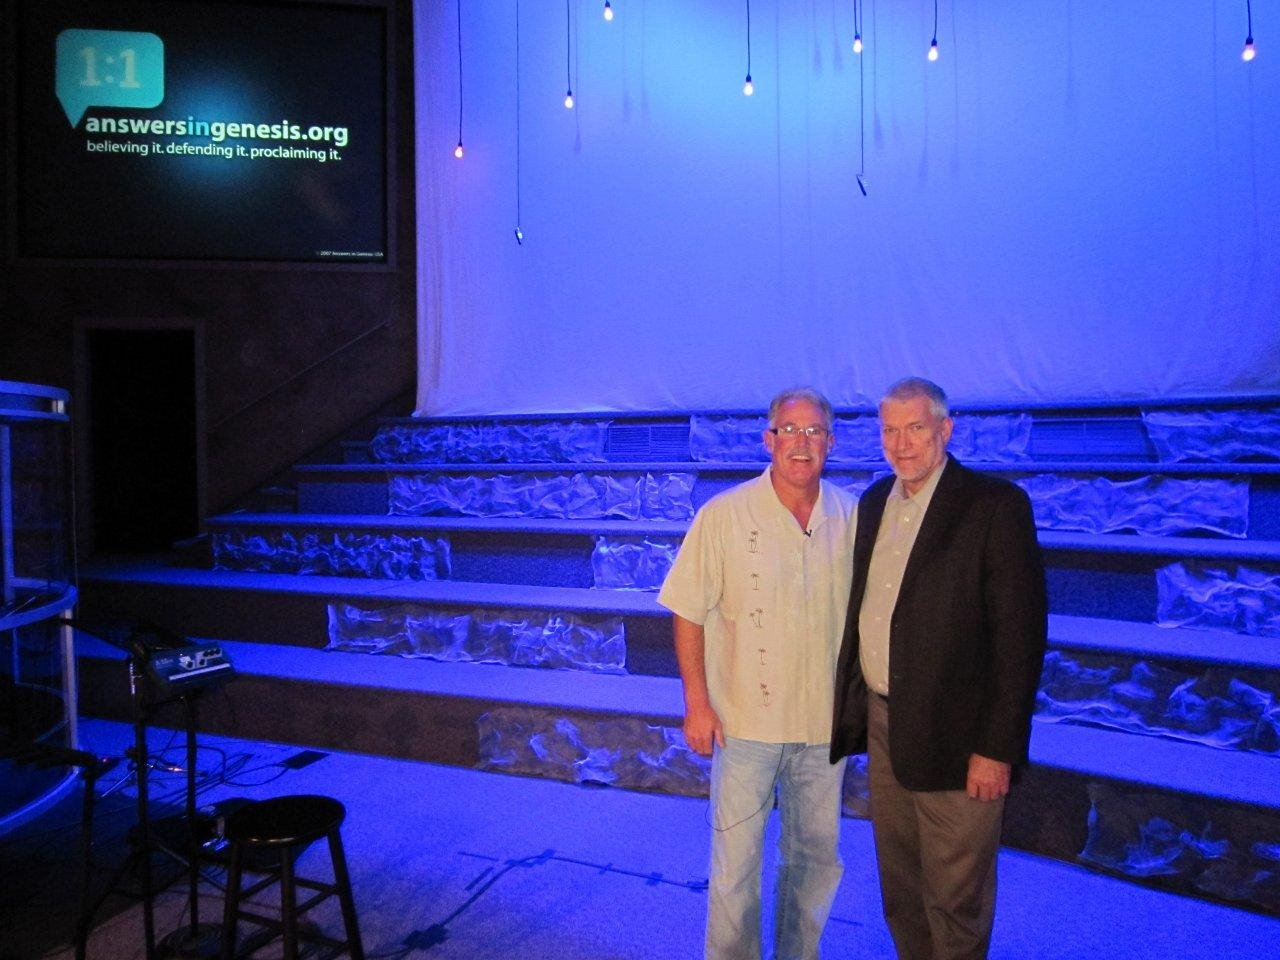 Ken Ham with Pastor Rick Countryman